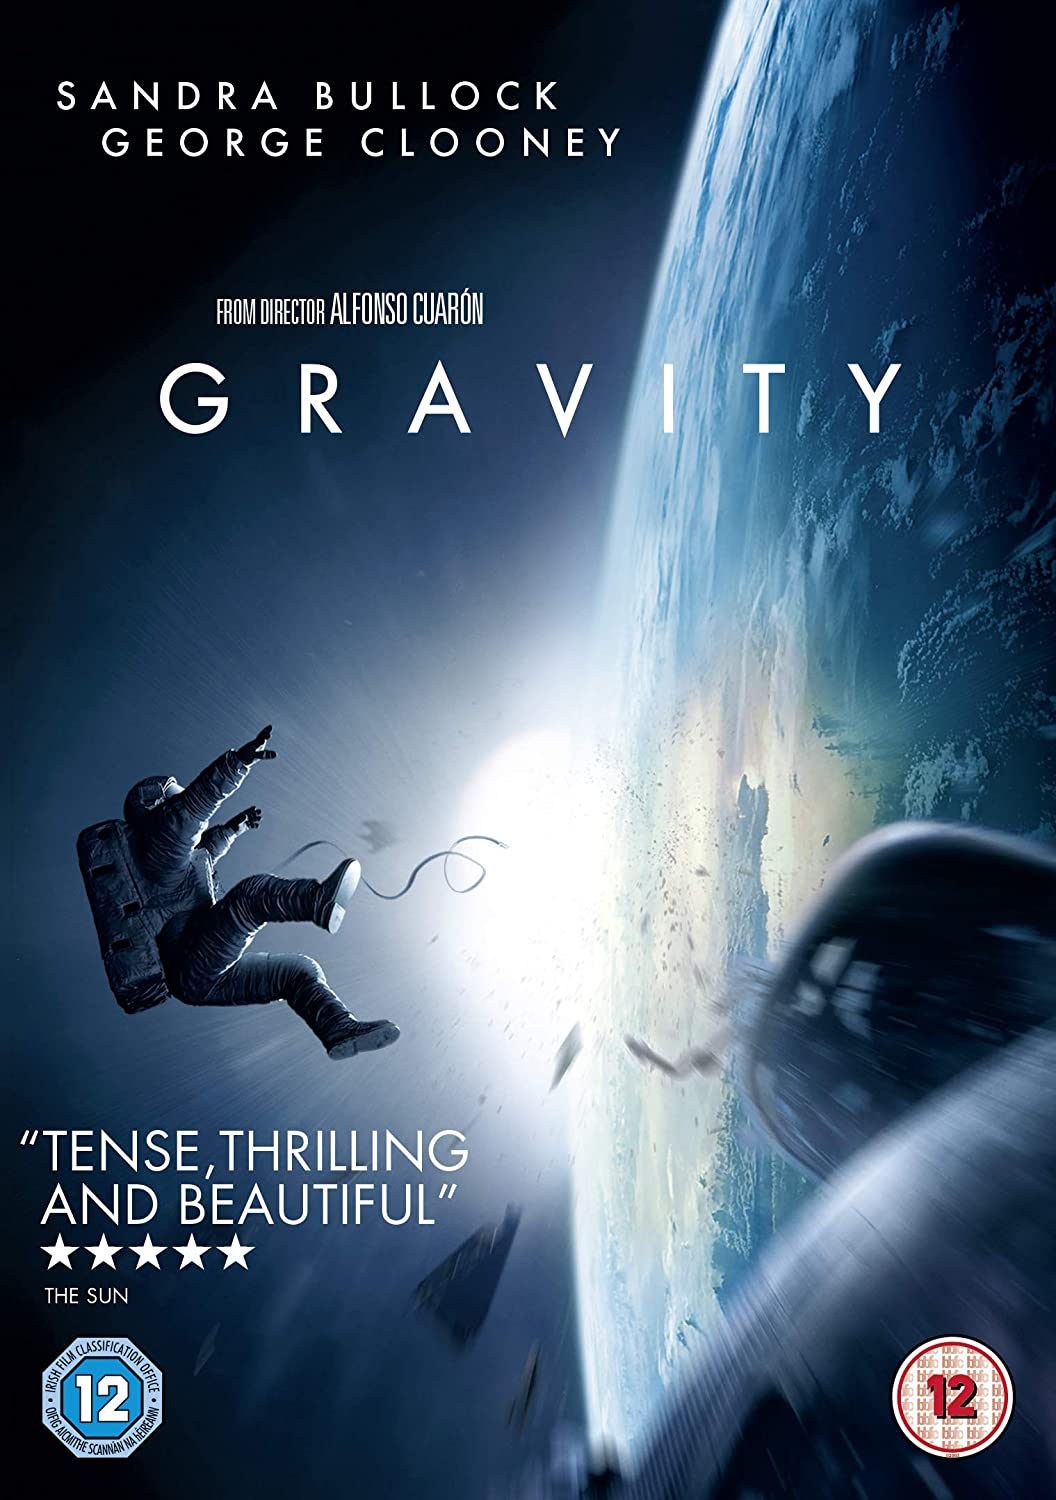 Gravity Dvd 2014 2013 Amazon Co Uk Sandra Bullock George Clooney Alfonso Cuaron Sandra Bullock George Clooney Dvd Blu Ray